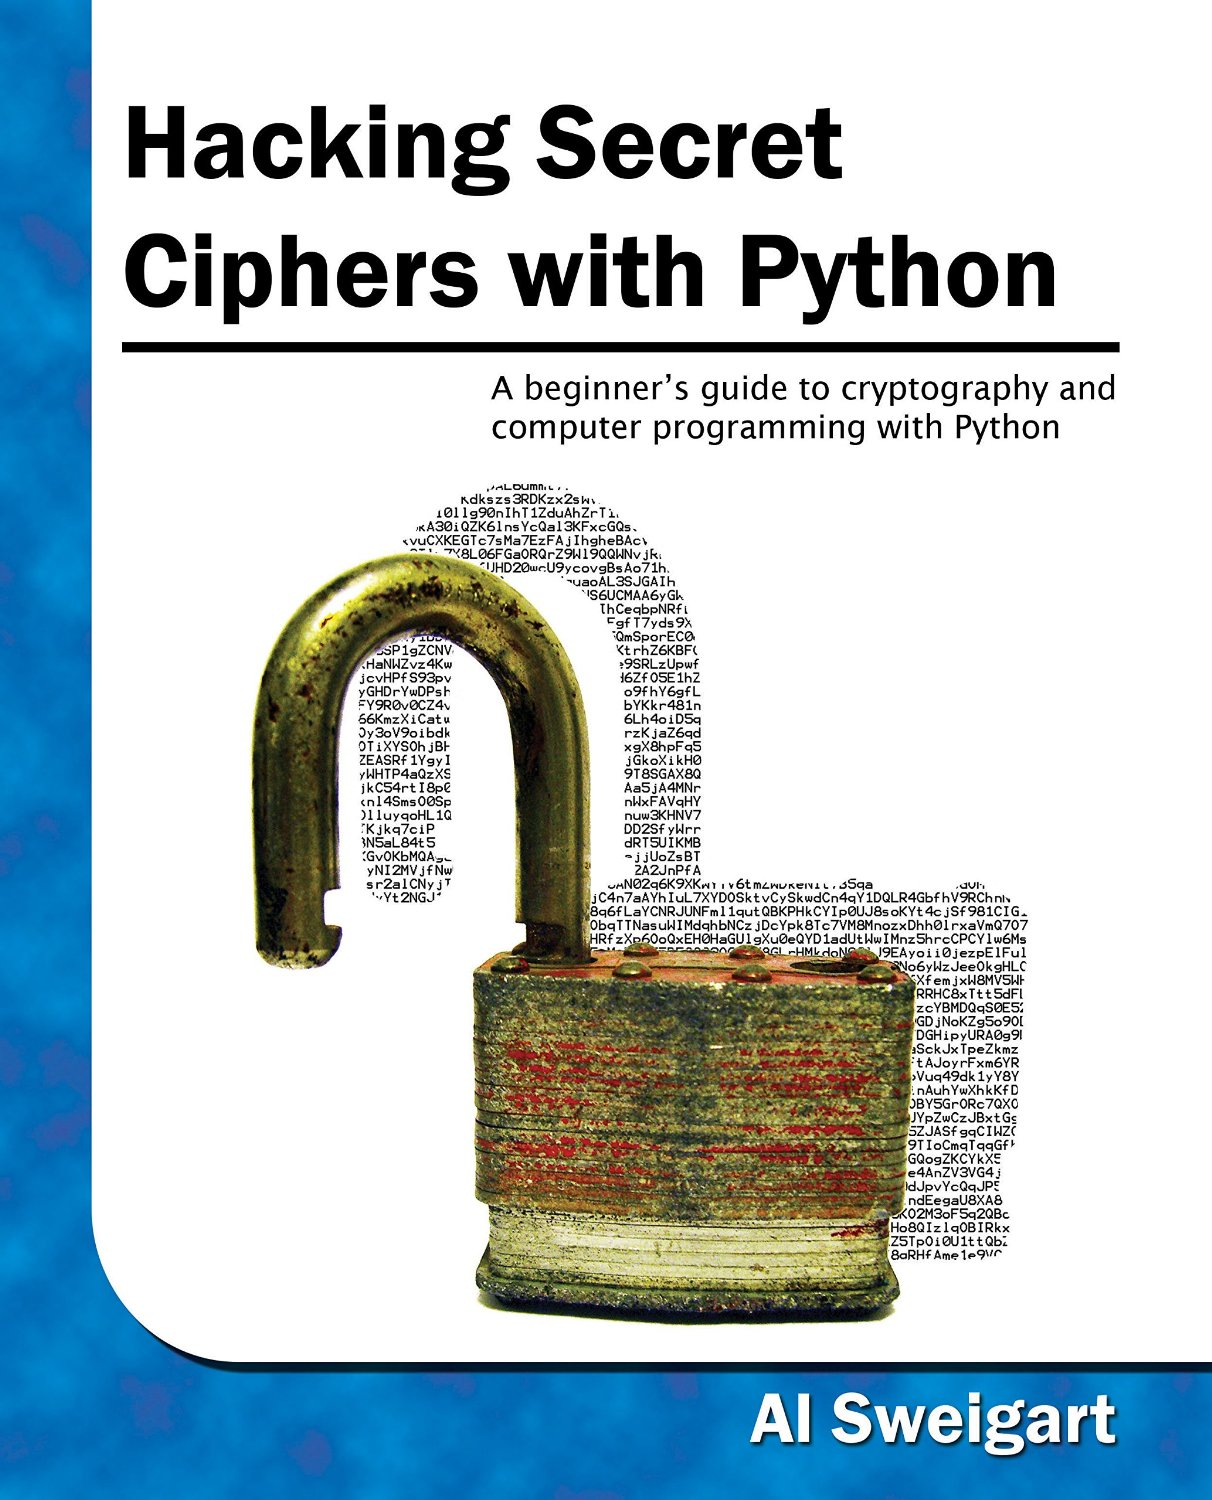 Hacking Secret Ciphers with Python free download